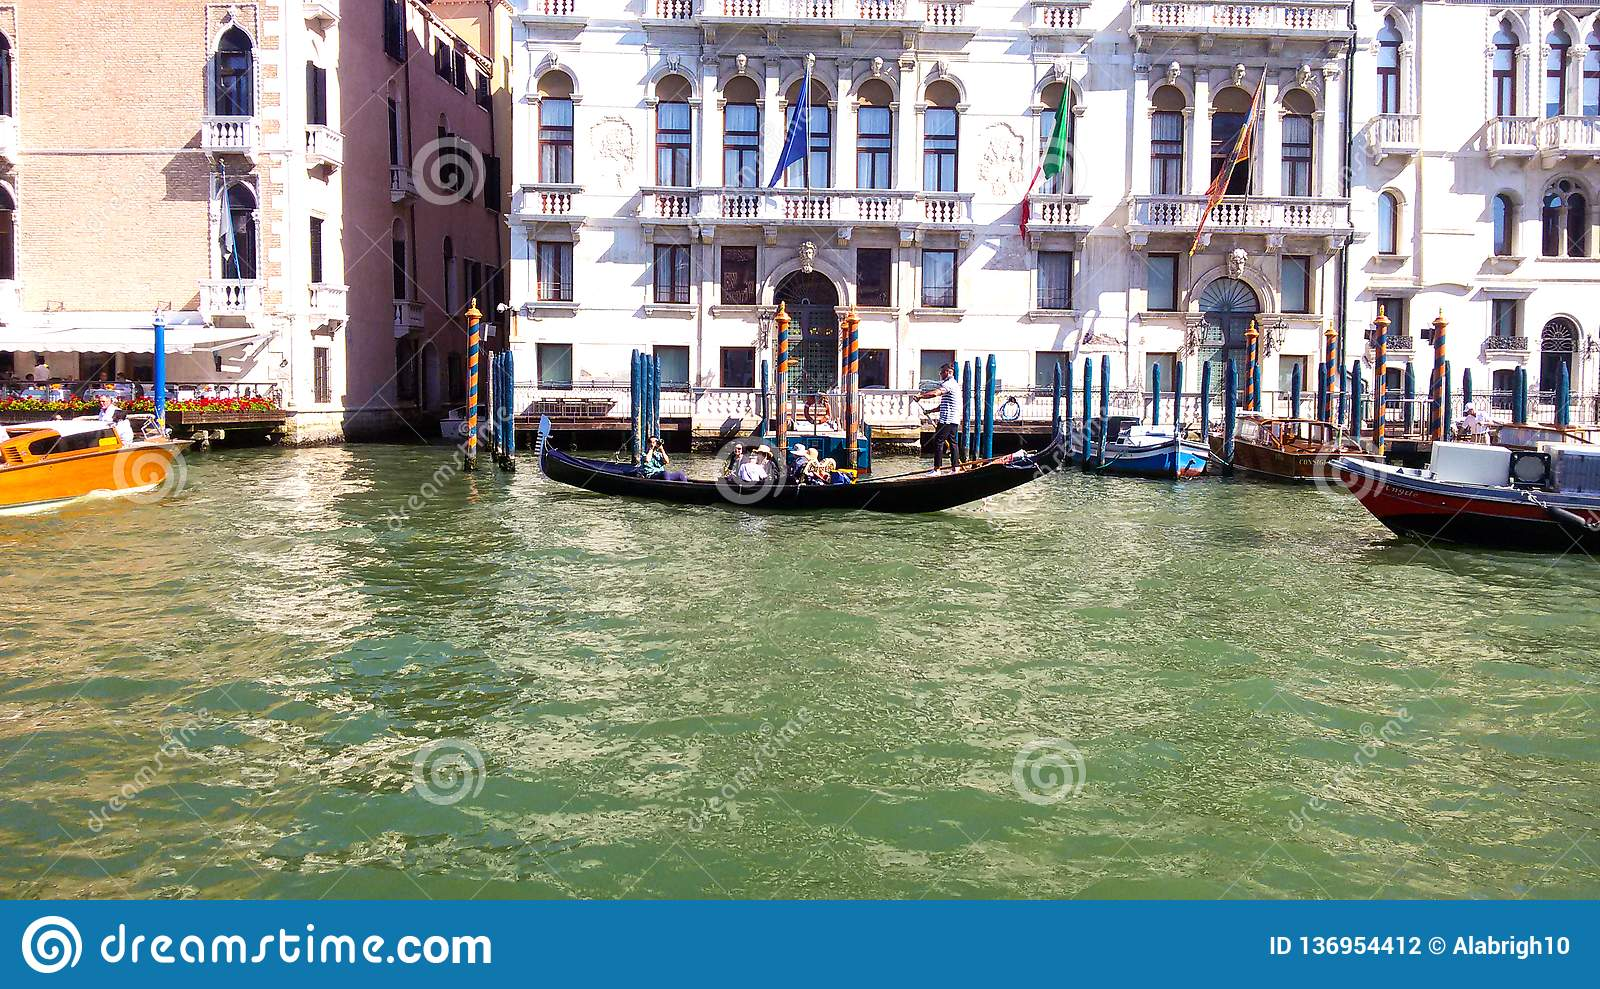 A gondola transports its passengers through a canal in Venice.